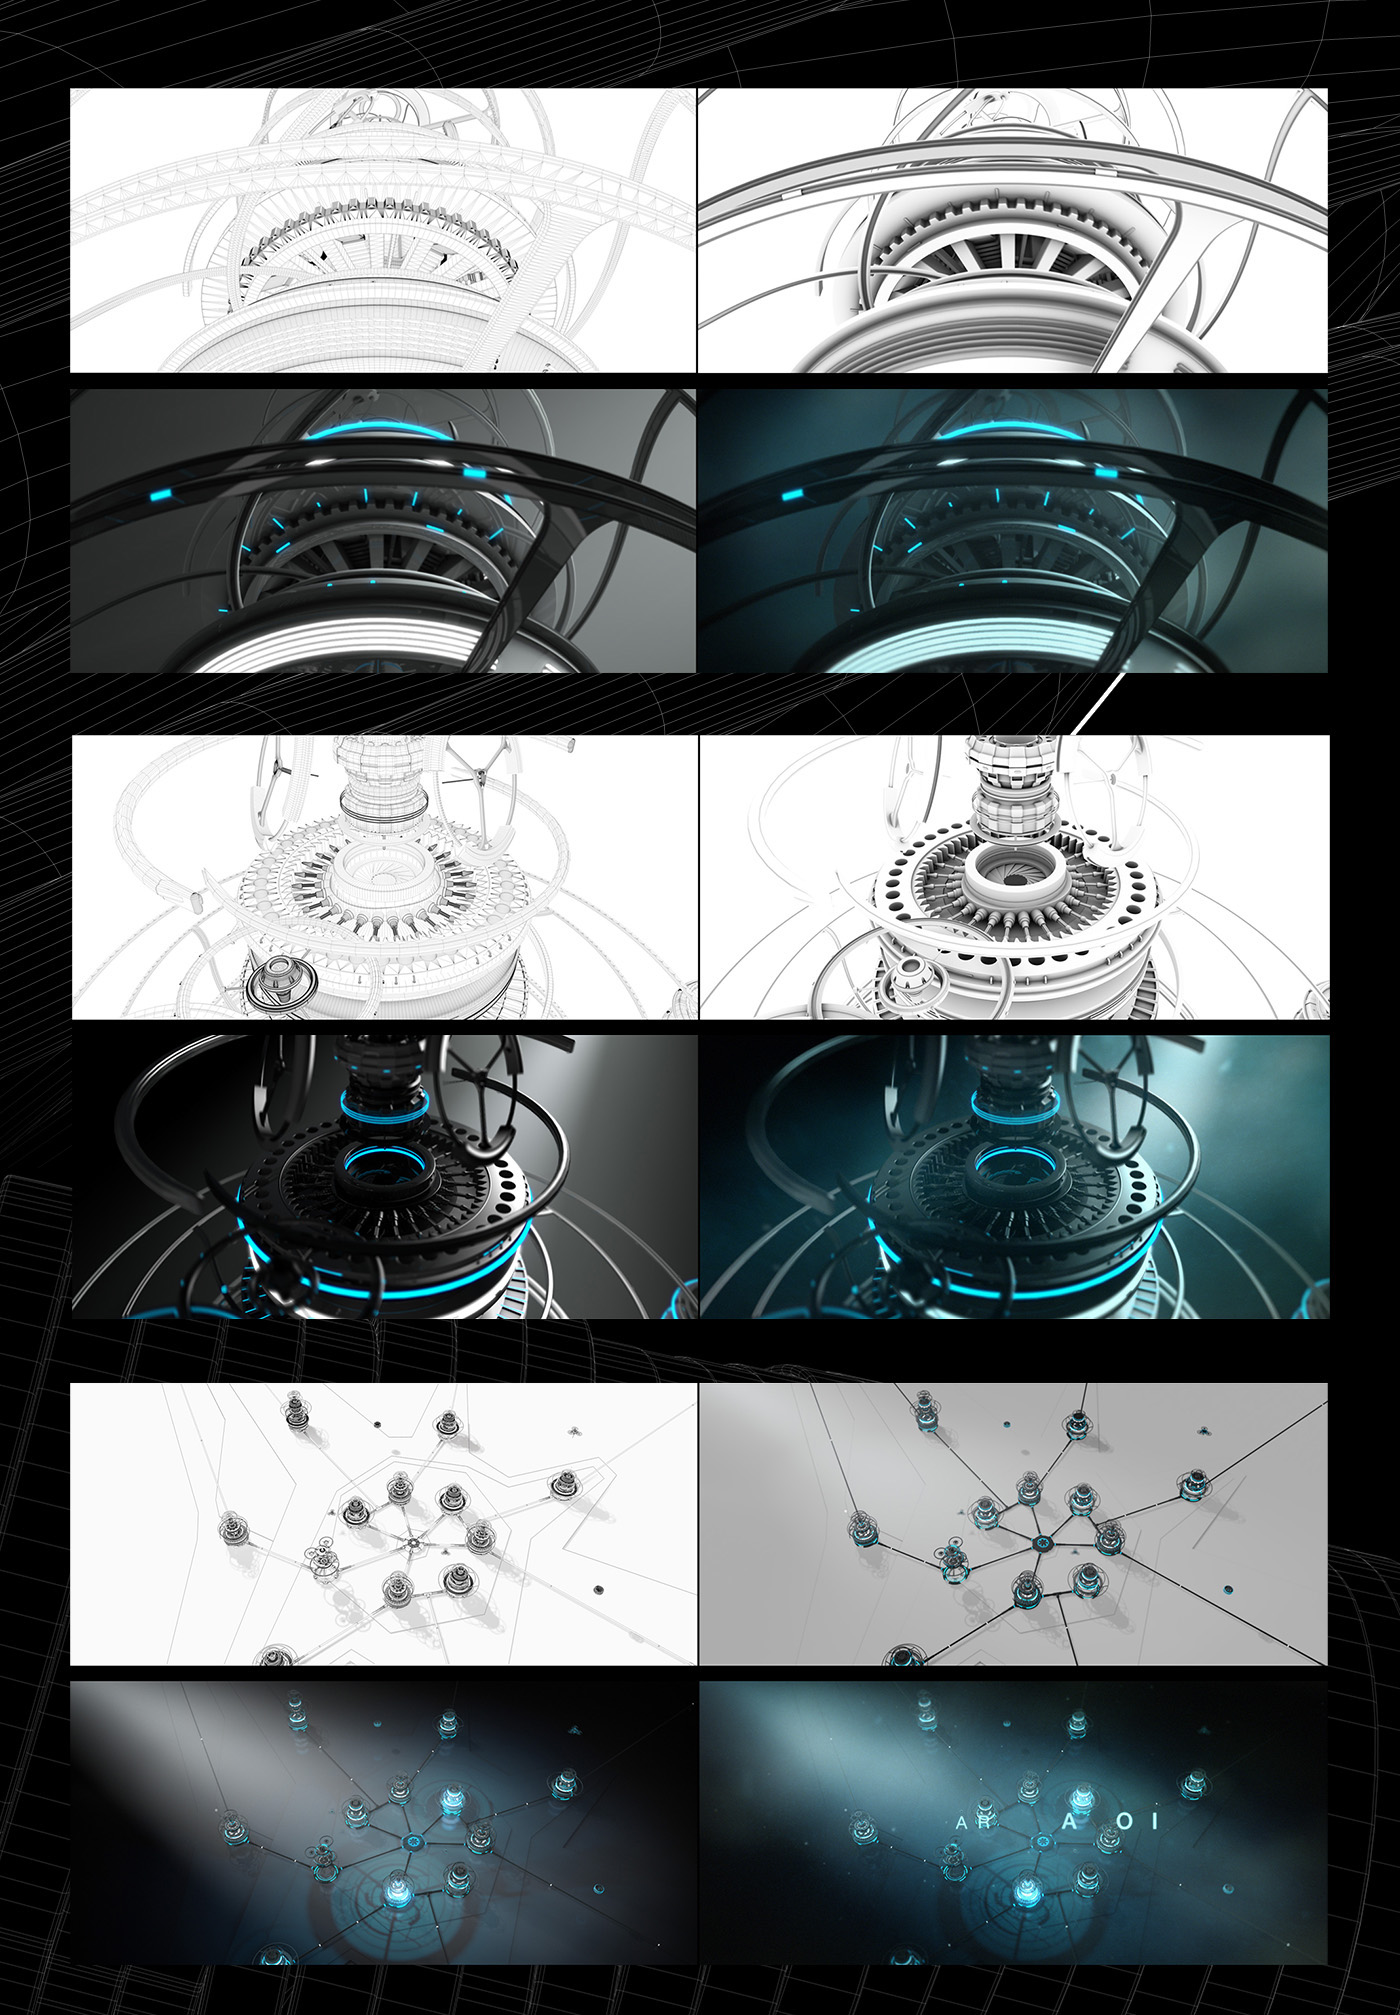 wittenstein,3D,after effects,Harmonograph,cinema 4d,lens flare,lines,mechatronic,compositing,short film,organic,structures,mechanical